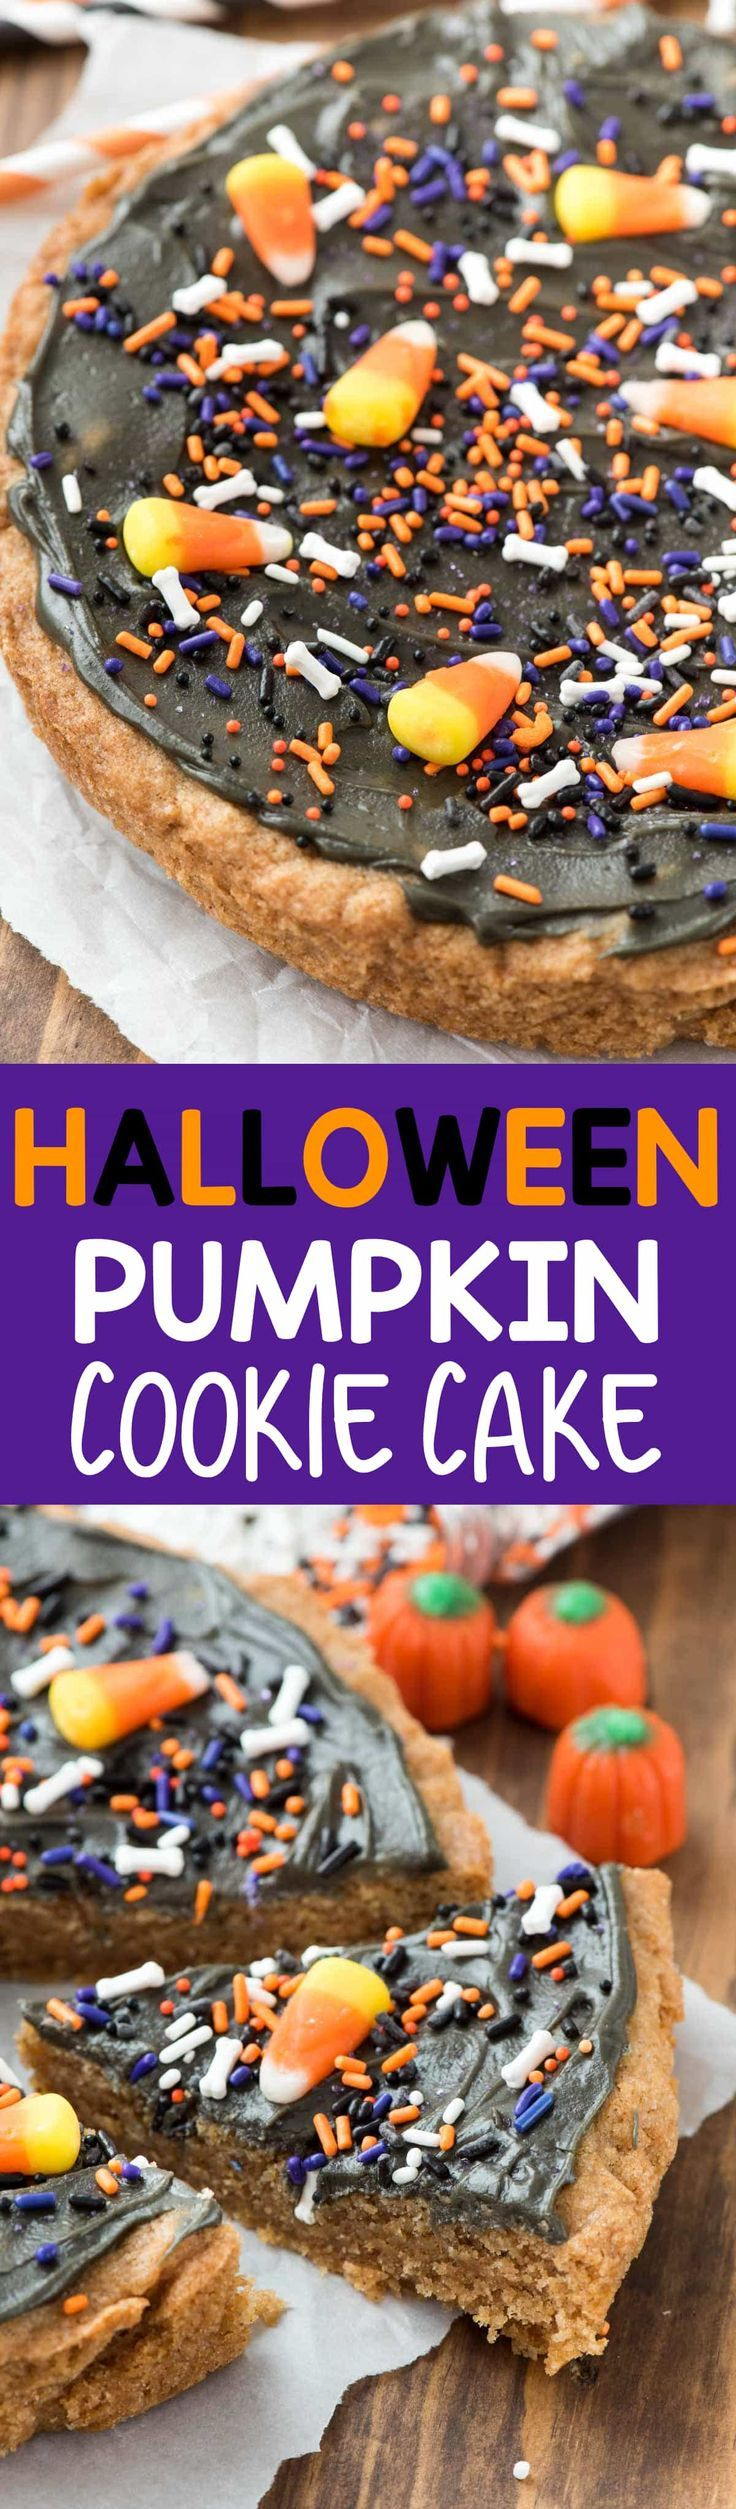 EASY Halloween Pumpkin Cookie Cake - the most fun Halloween treat! Thanks to a pumpkin cookie mix this recipe is made in minutes!!  via @crazyforcrust